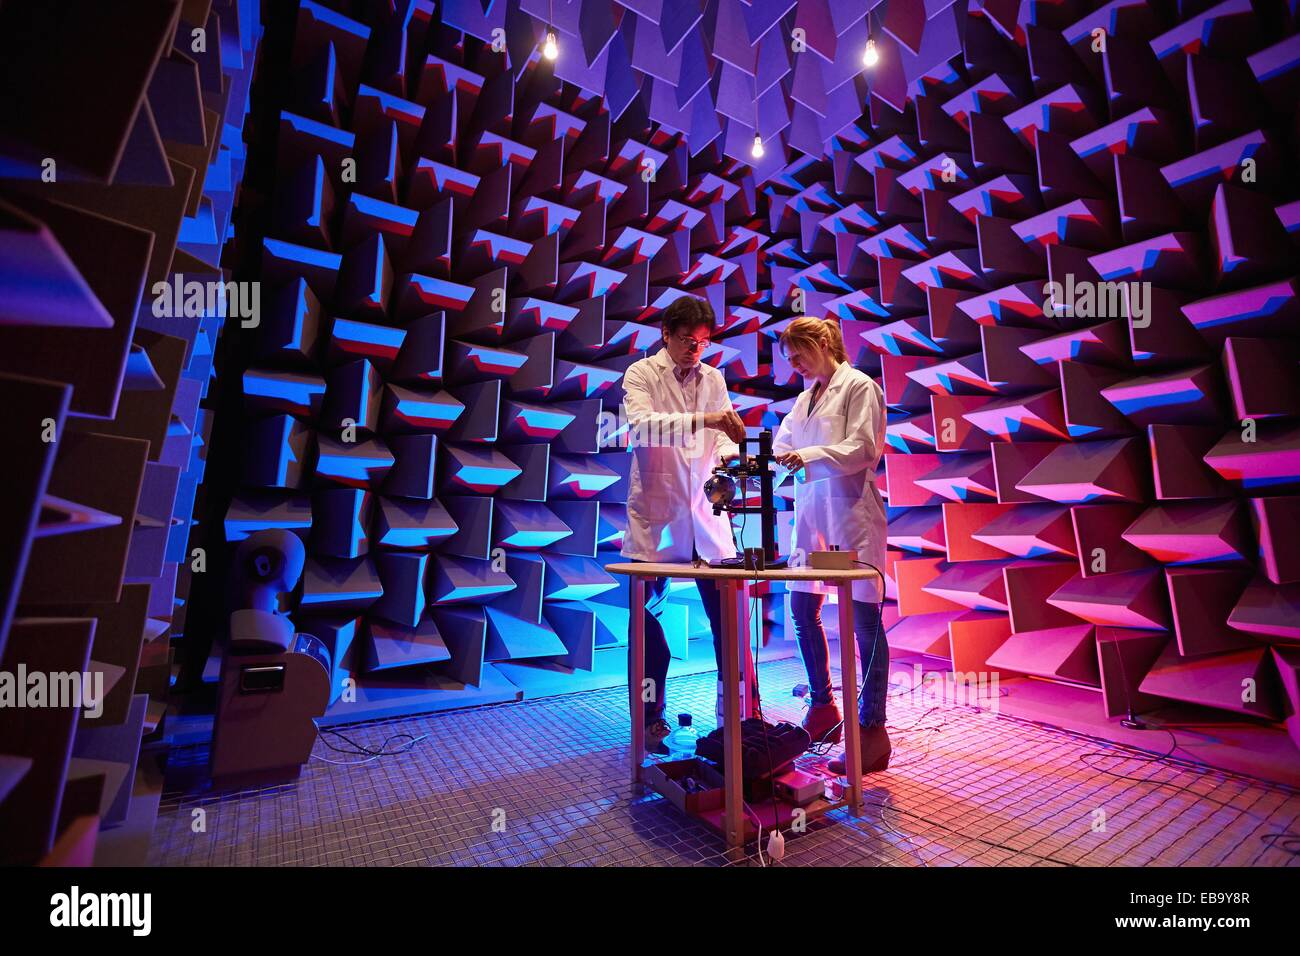 Acoustic chamber emc telecom lab certification of low voltage acoustic chamber emc telecom lab certification of low voltage electrical electronic products technological services to 1betcityfo Image collections